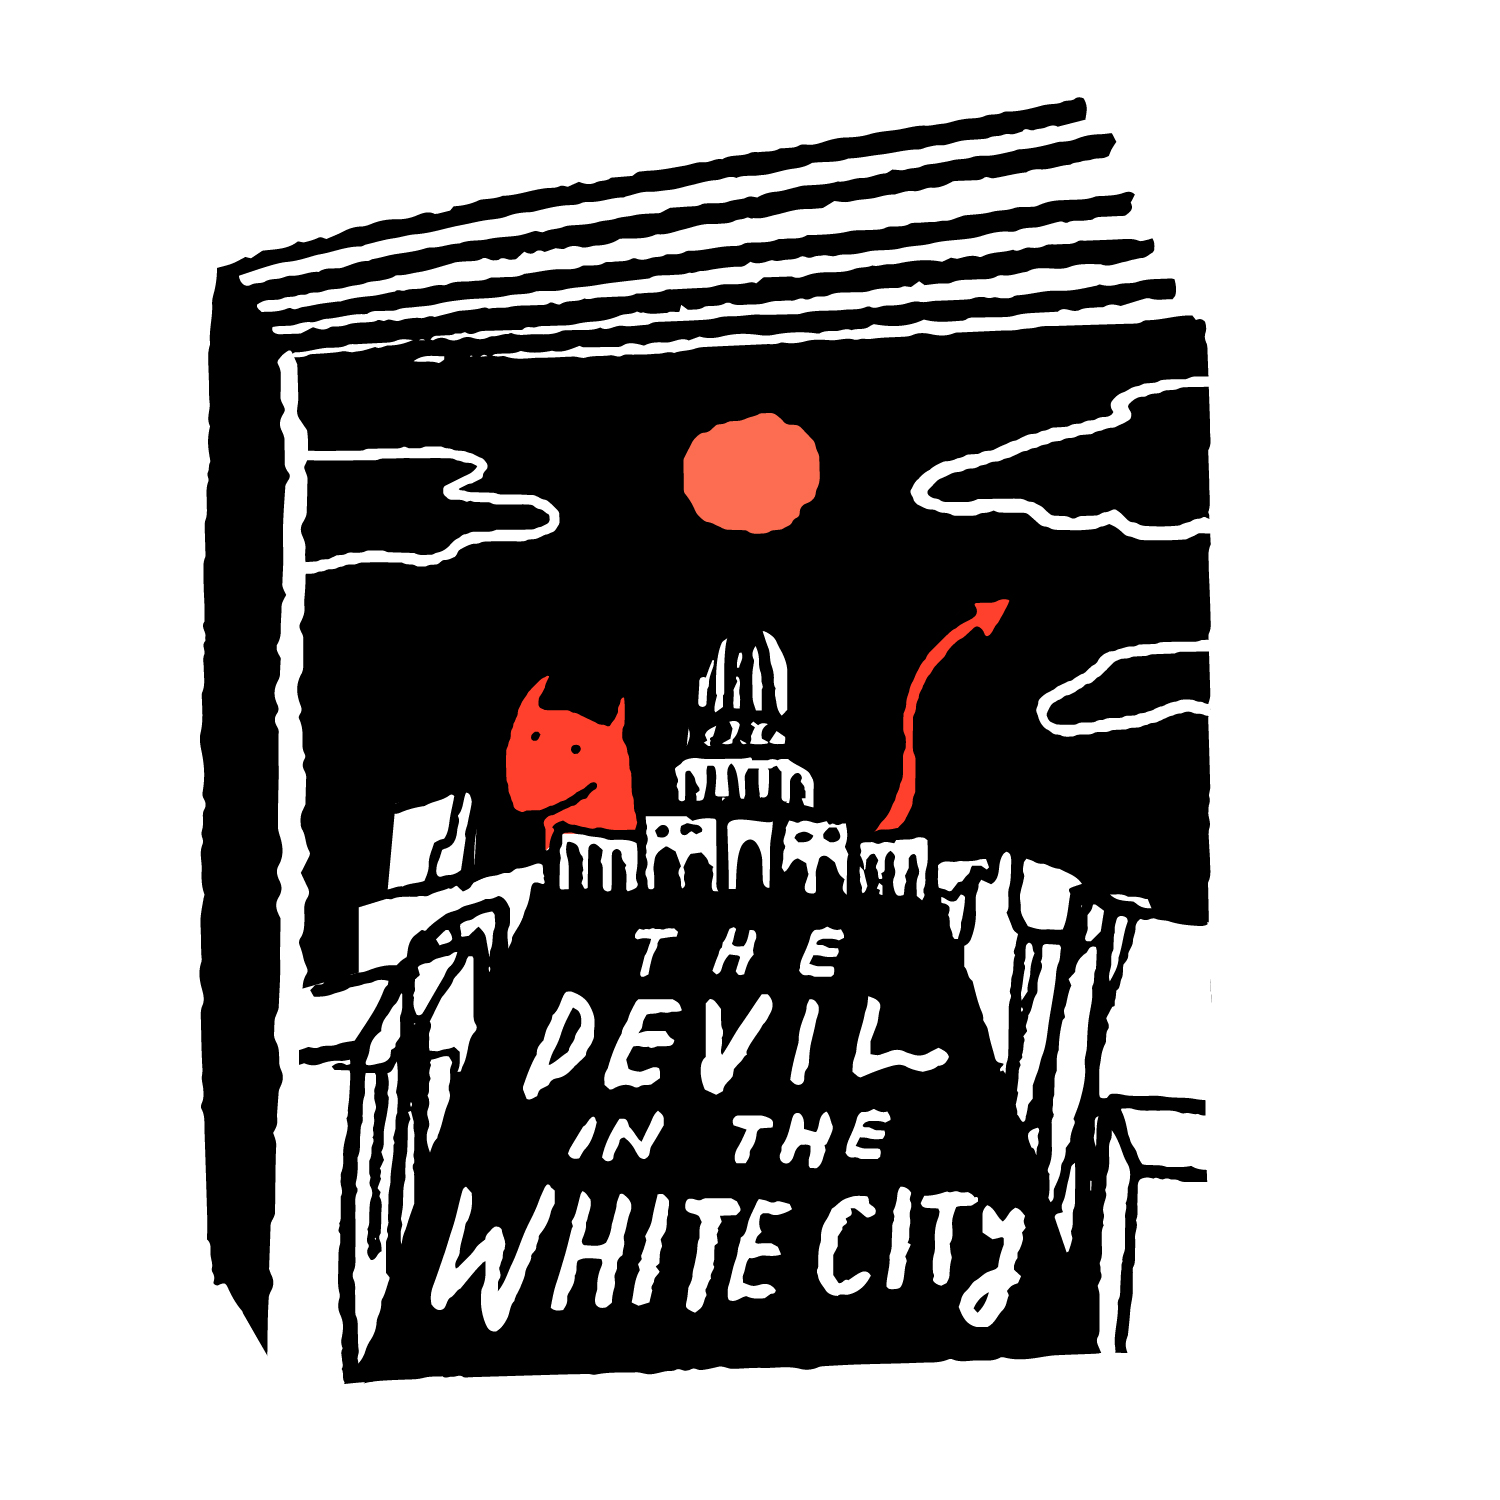 60 The Devil In The White City: A Saga Of Magic And Murder At The Fair  That Changed America By Erik Larson